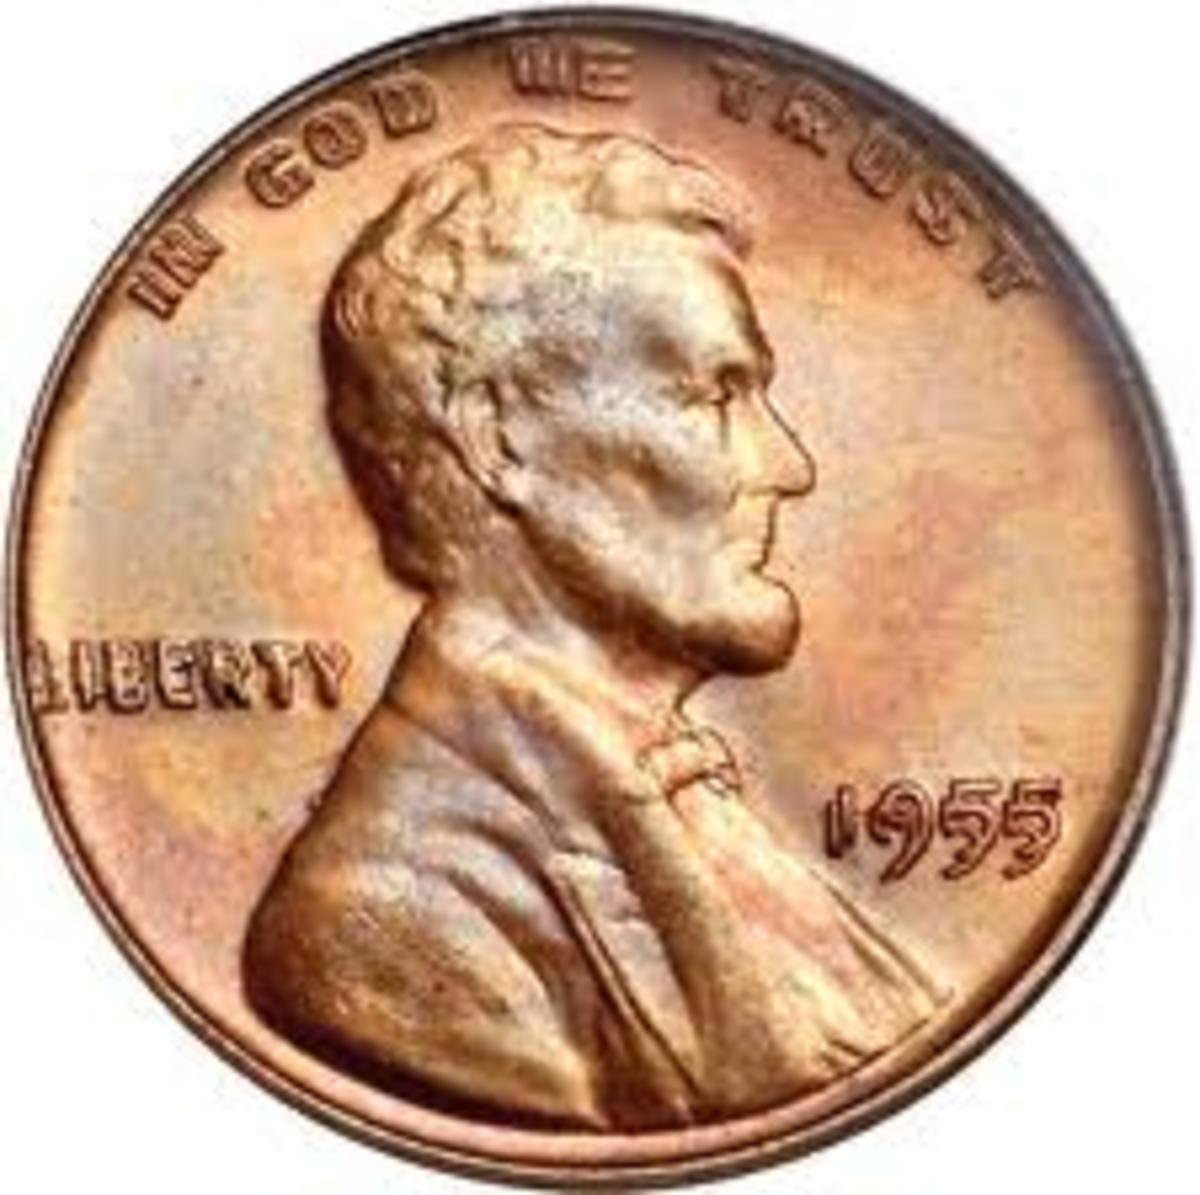 """This is the rare 1955 double die penny. You can clearly see the doubling in """"LIBERTY"""", """"IN GOD WE TRUST"""", and the date."""